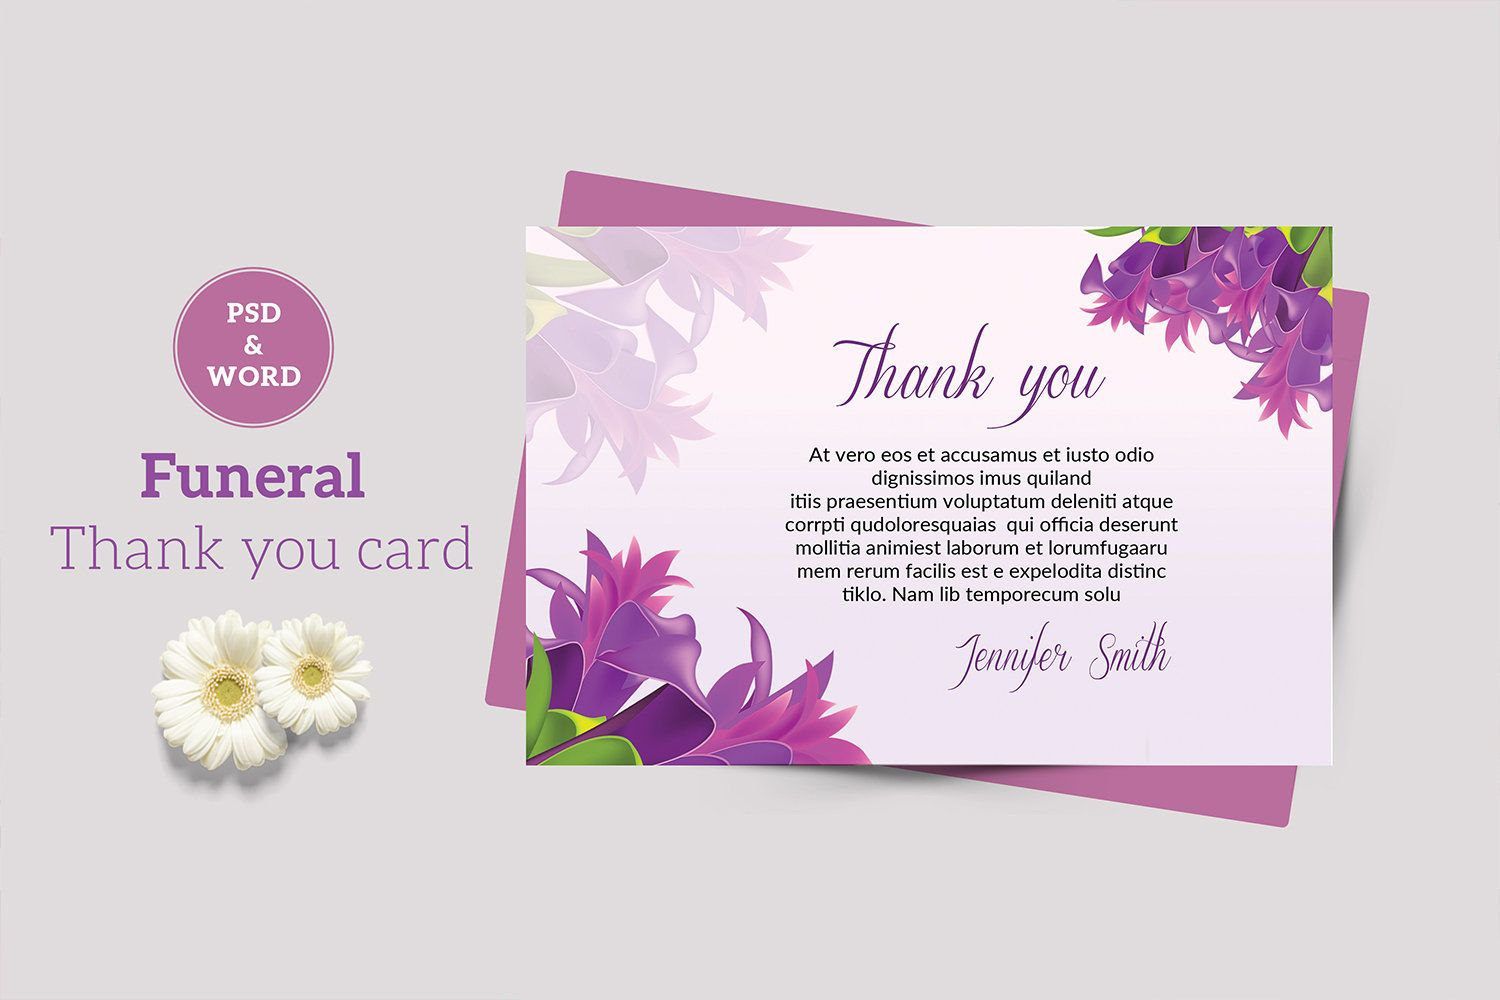 Funeral Thank You Card Template Thank You Notes Funeral Acknowledgement Card Editable Ms Word Photoshop Template V02 Funeral Thank You Cards Thank You Card Template Funeral Thank You